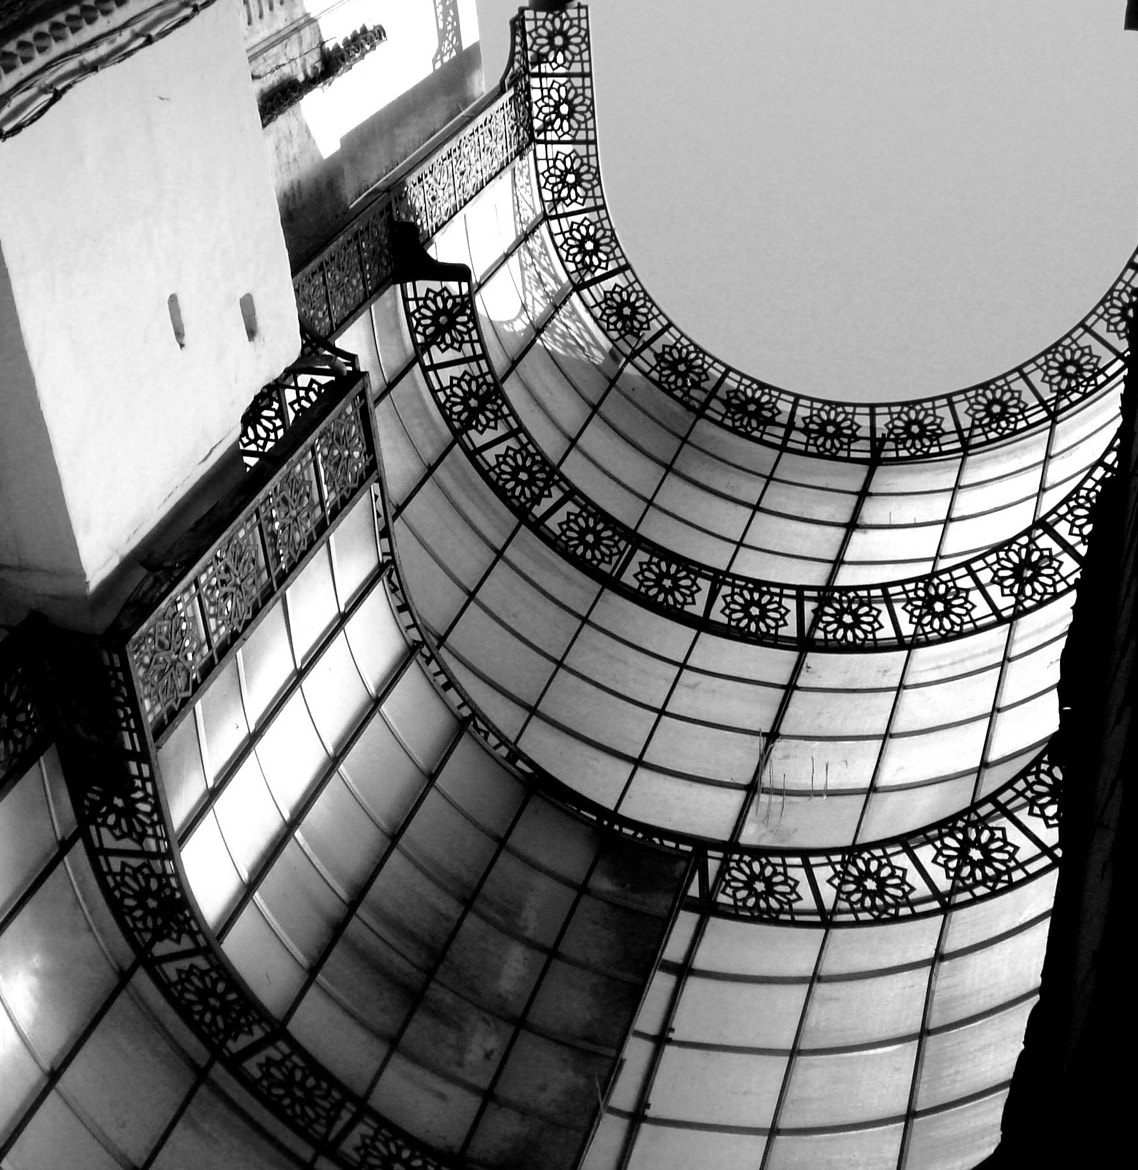 Photograph architecture by Alami Alami on 500px